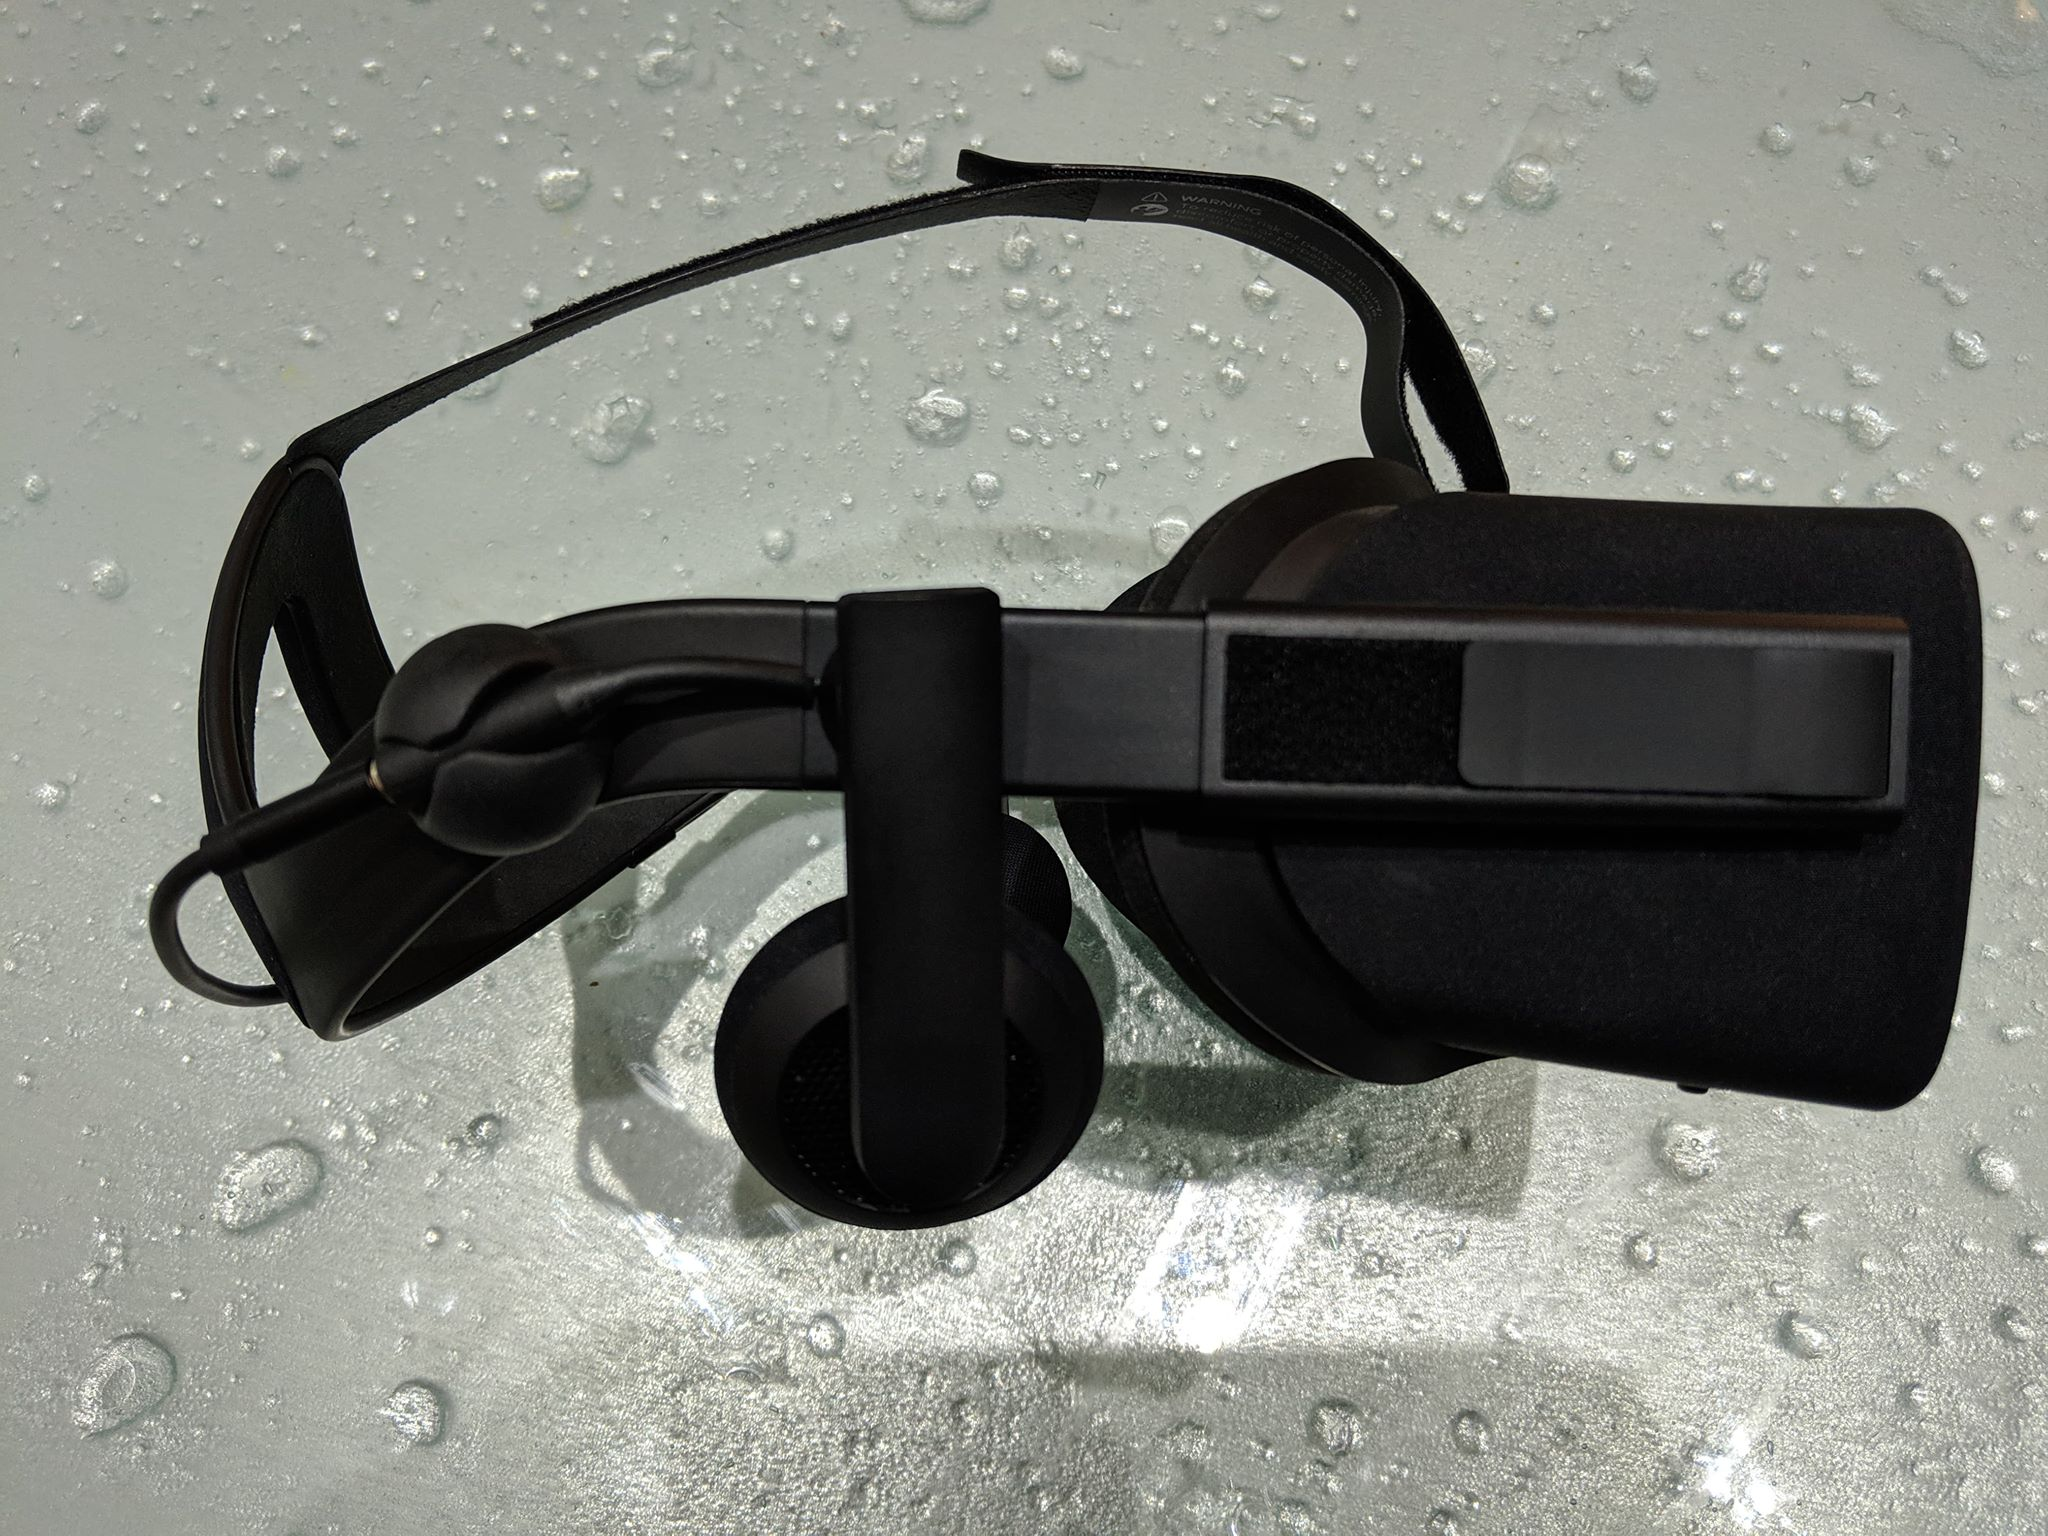 Fix your Oculus Rift audio failure for $0 00 with the RR1